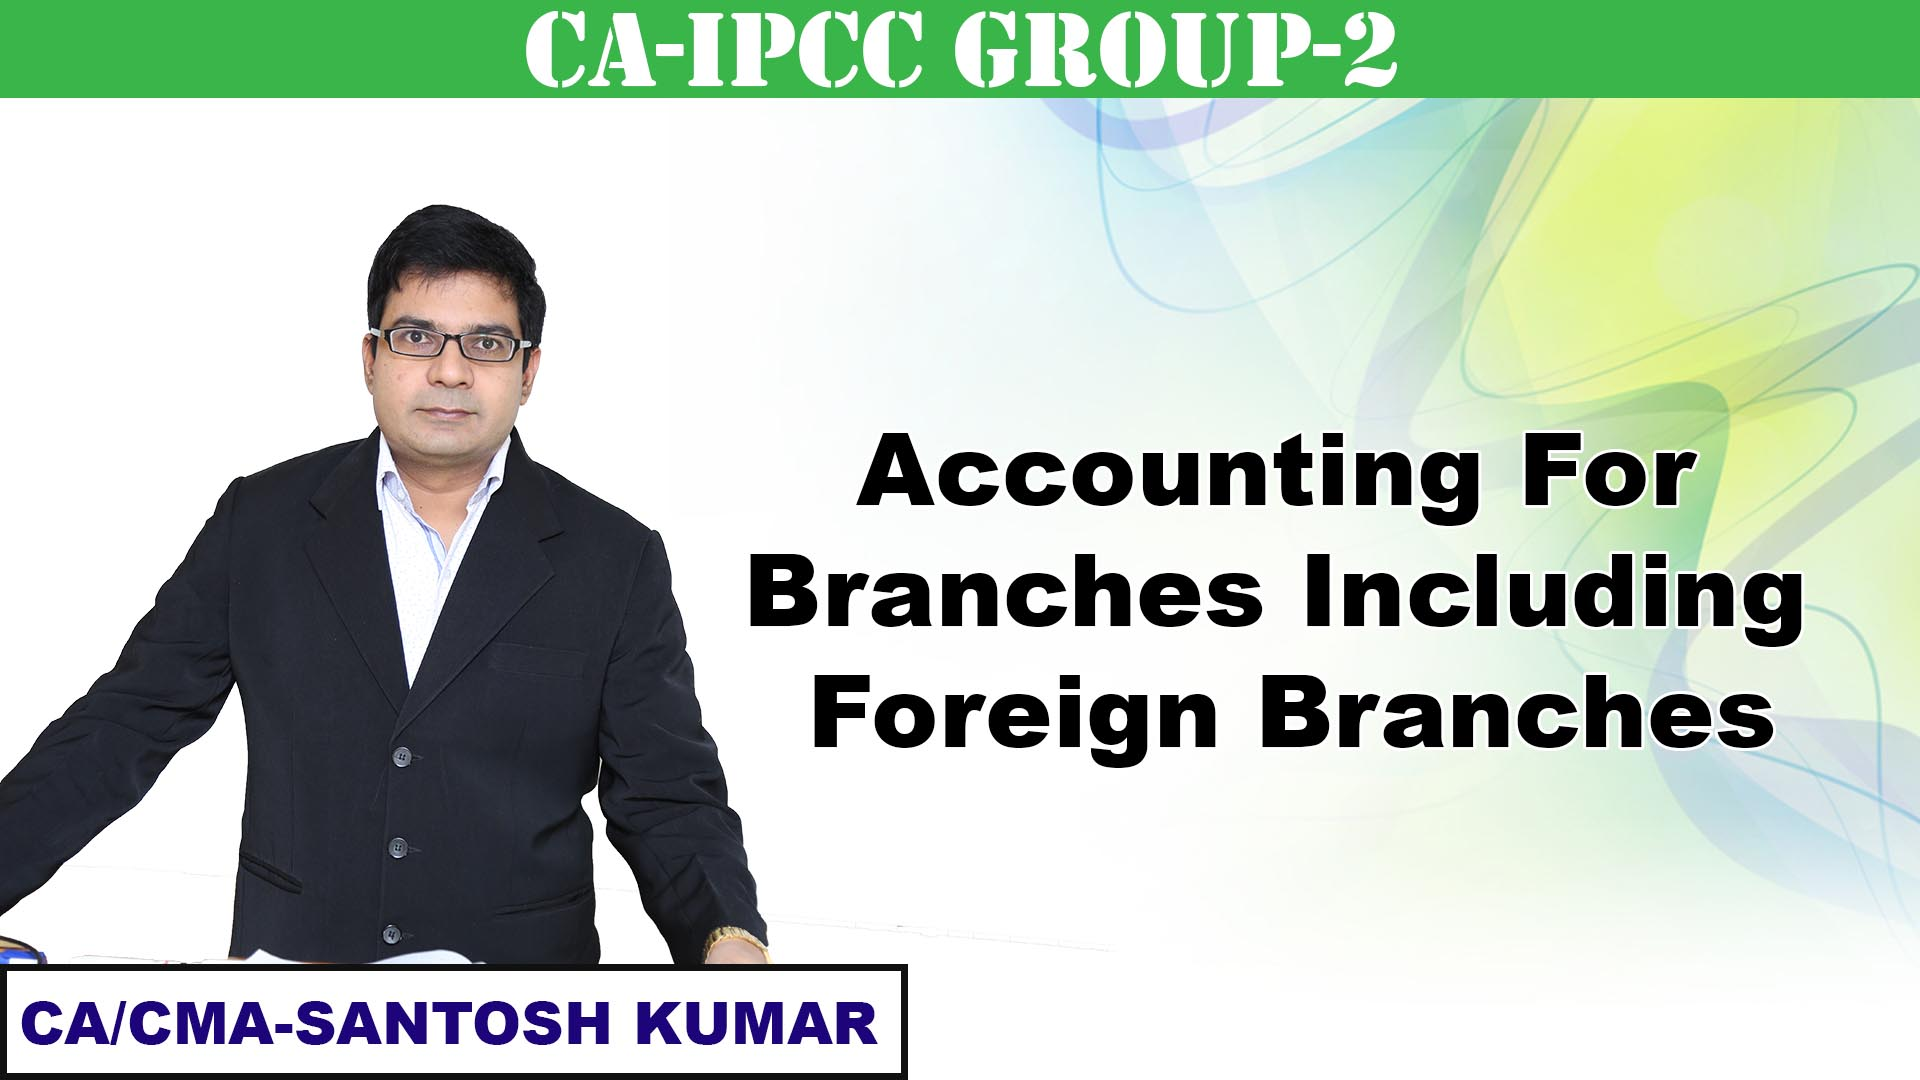 Accounting for Branches including Foreign Branches